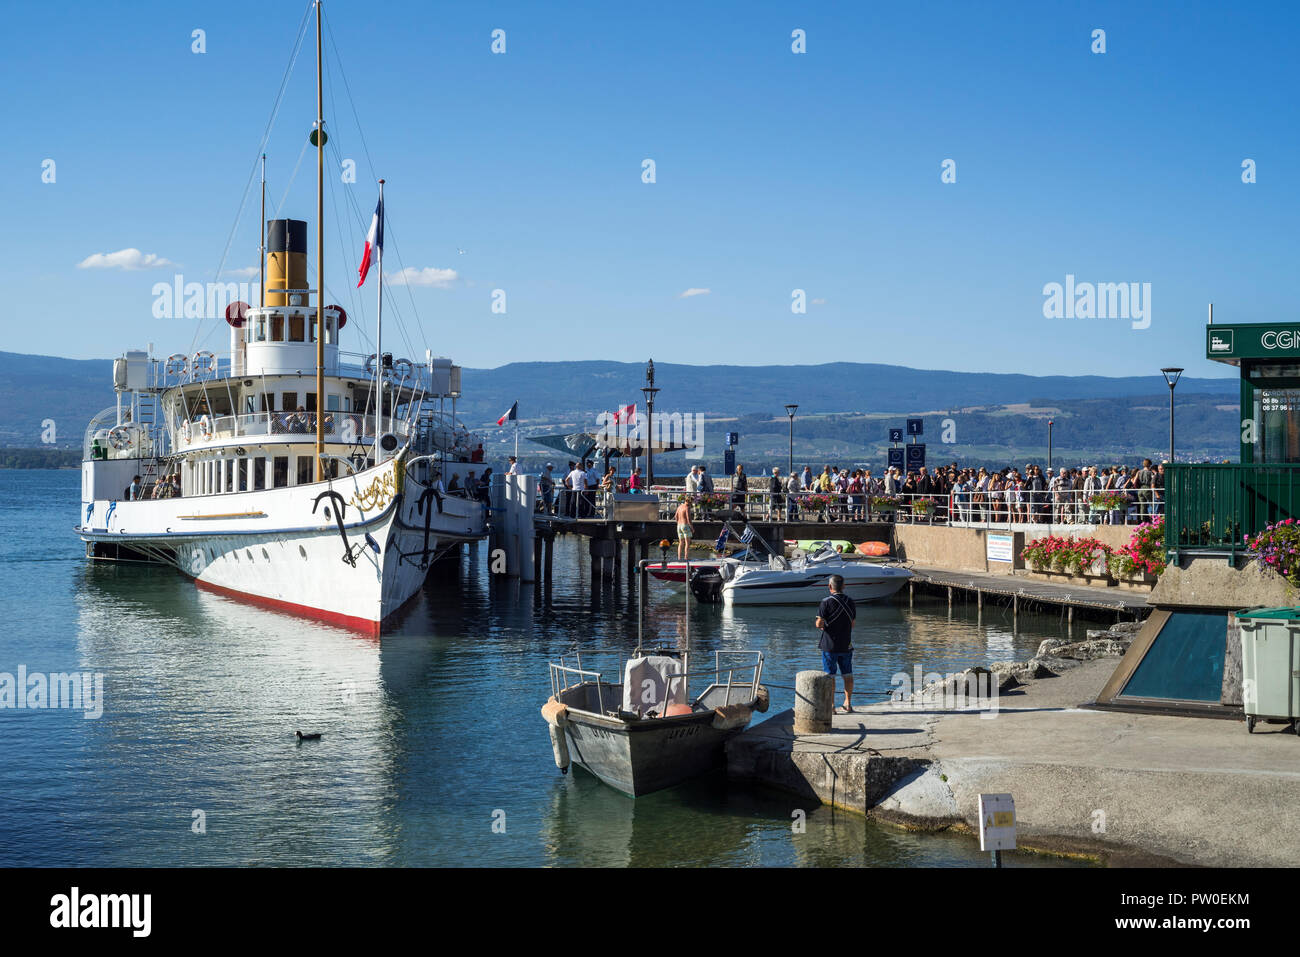 Swiss historic Belle Epoque paddle steamboat Savoie in the old port at Yvoire along Lake Geneva / lac Léman, Haute-Savoie, France - Stock Image